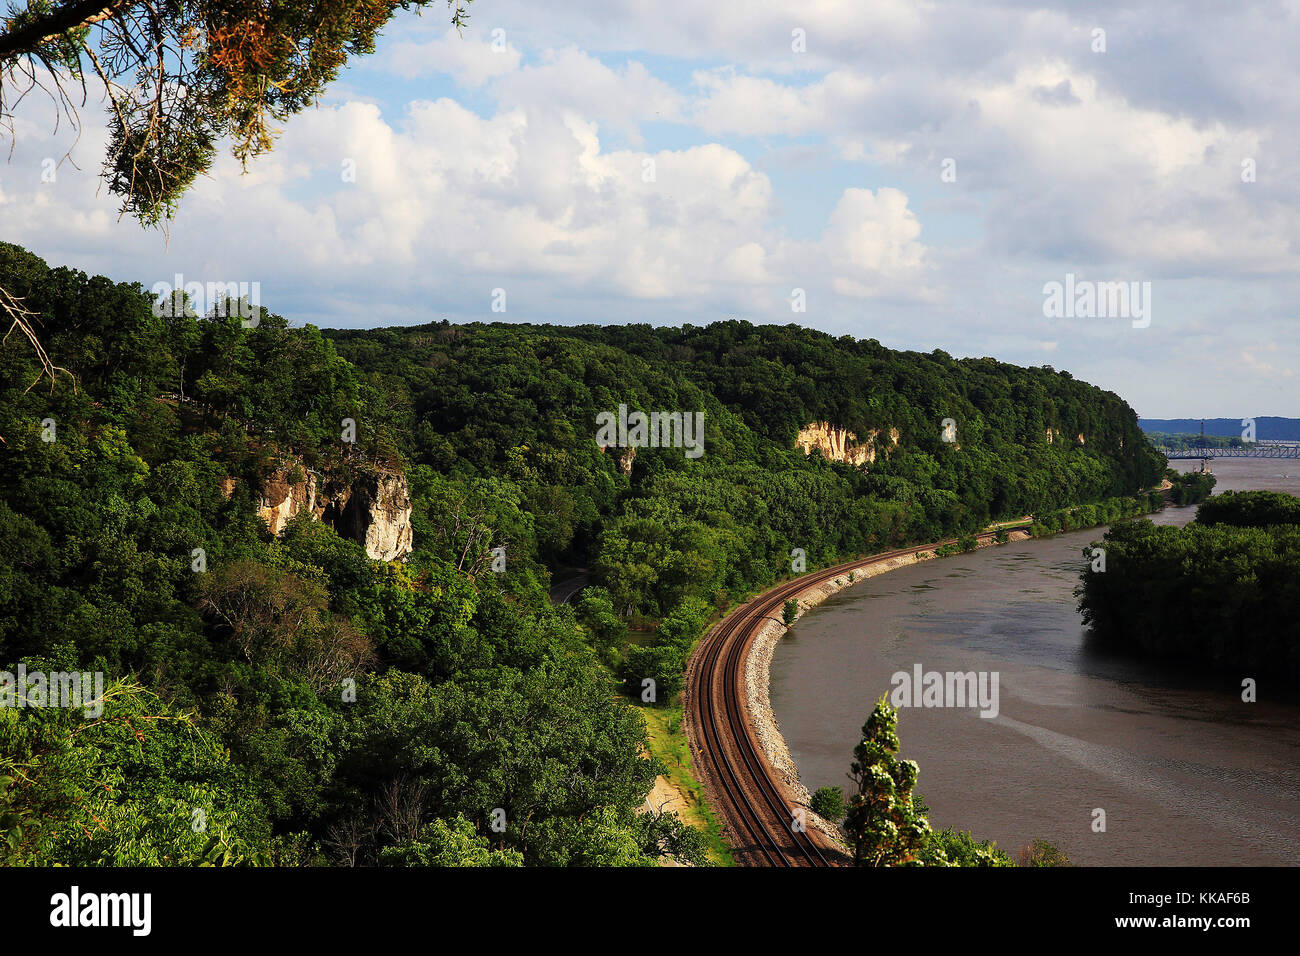 Iowa, USA. 22nd June, 2017. The gateway to seeing the Mississippi Palisades State Park's impressive assortment - Stock Image